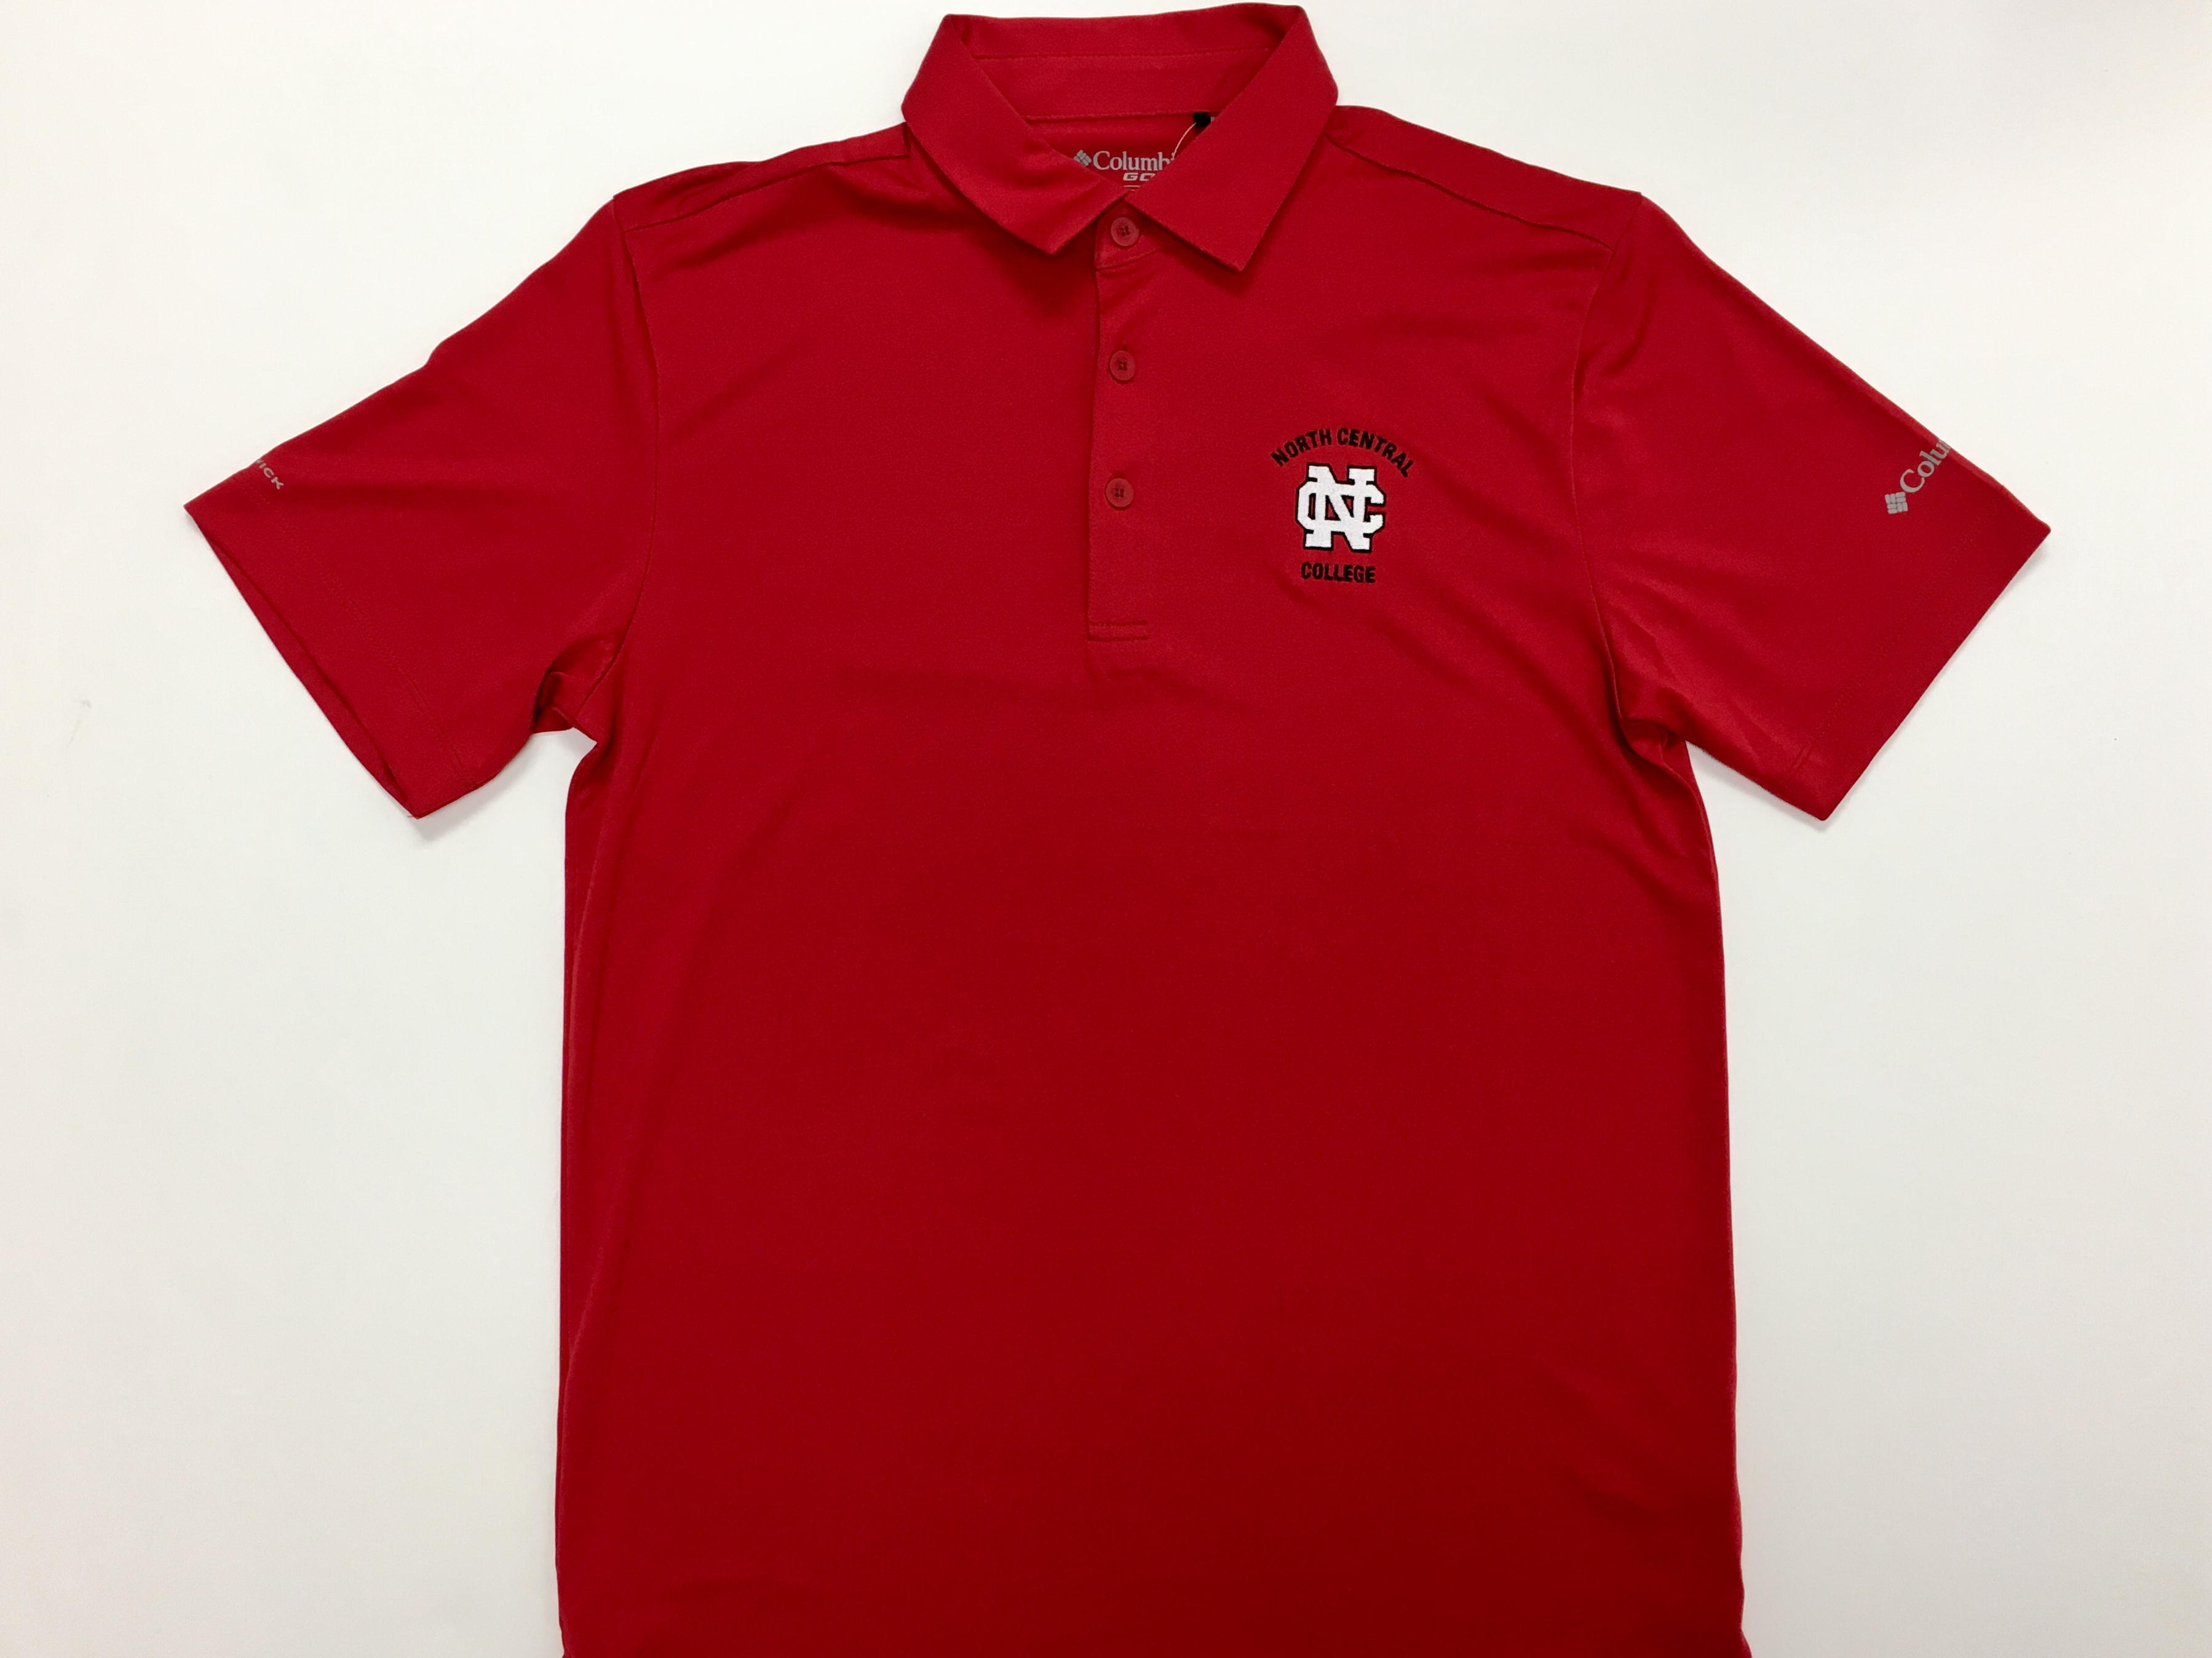 Image for the Clearance - (Med only) Columbia Omni-Wick Drive Polo product